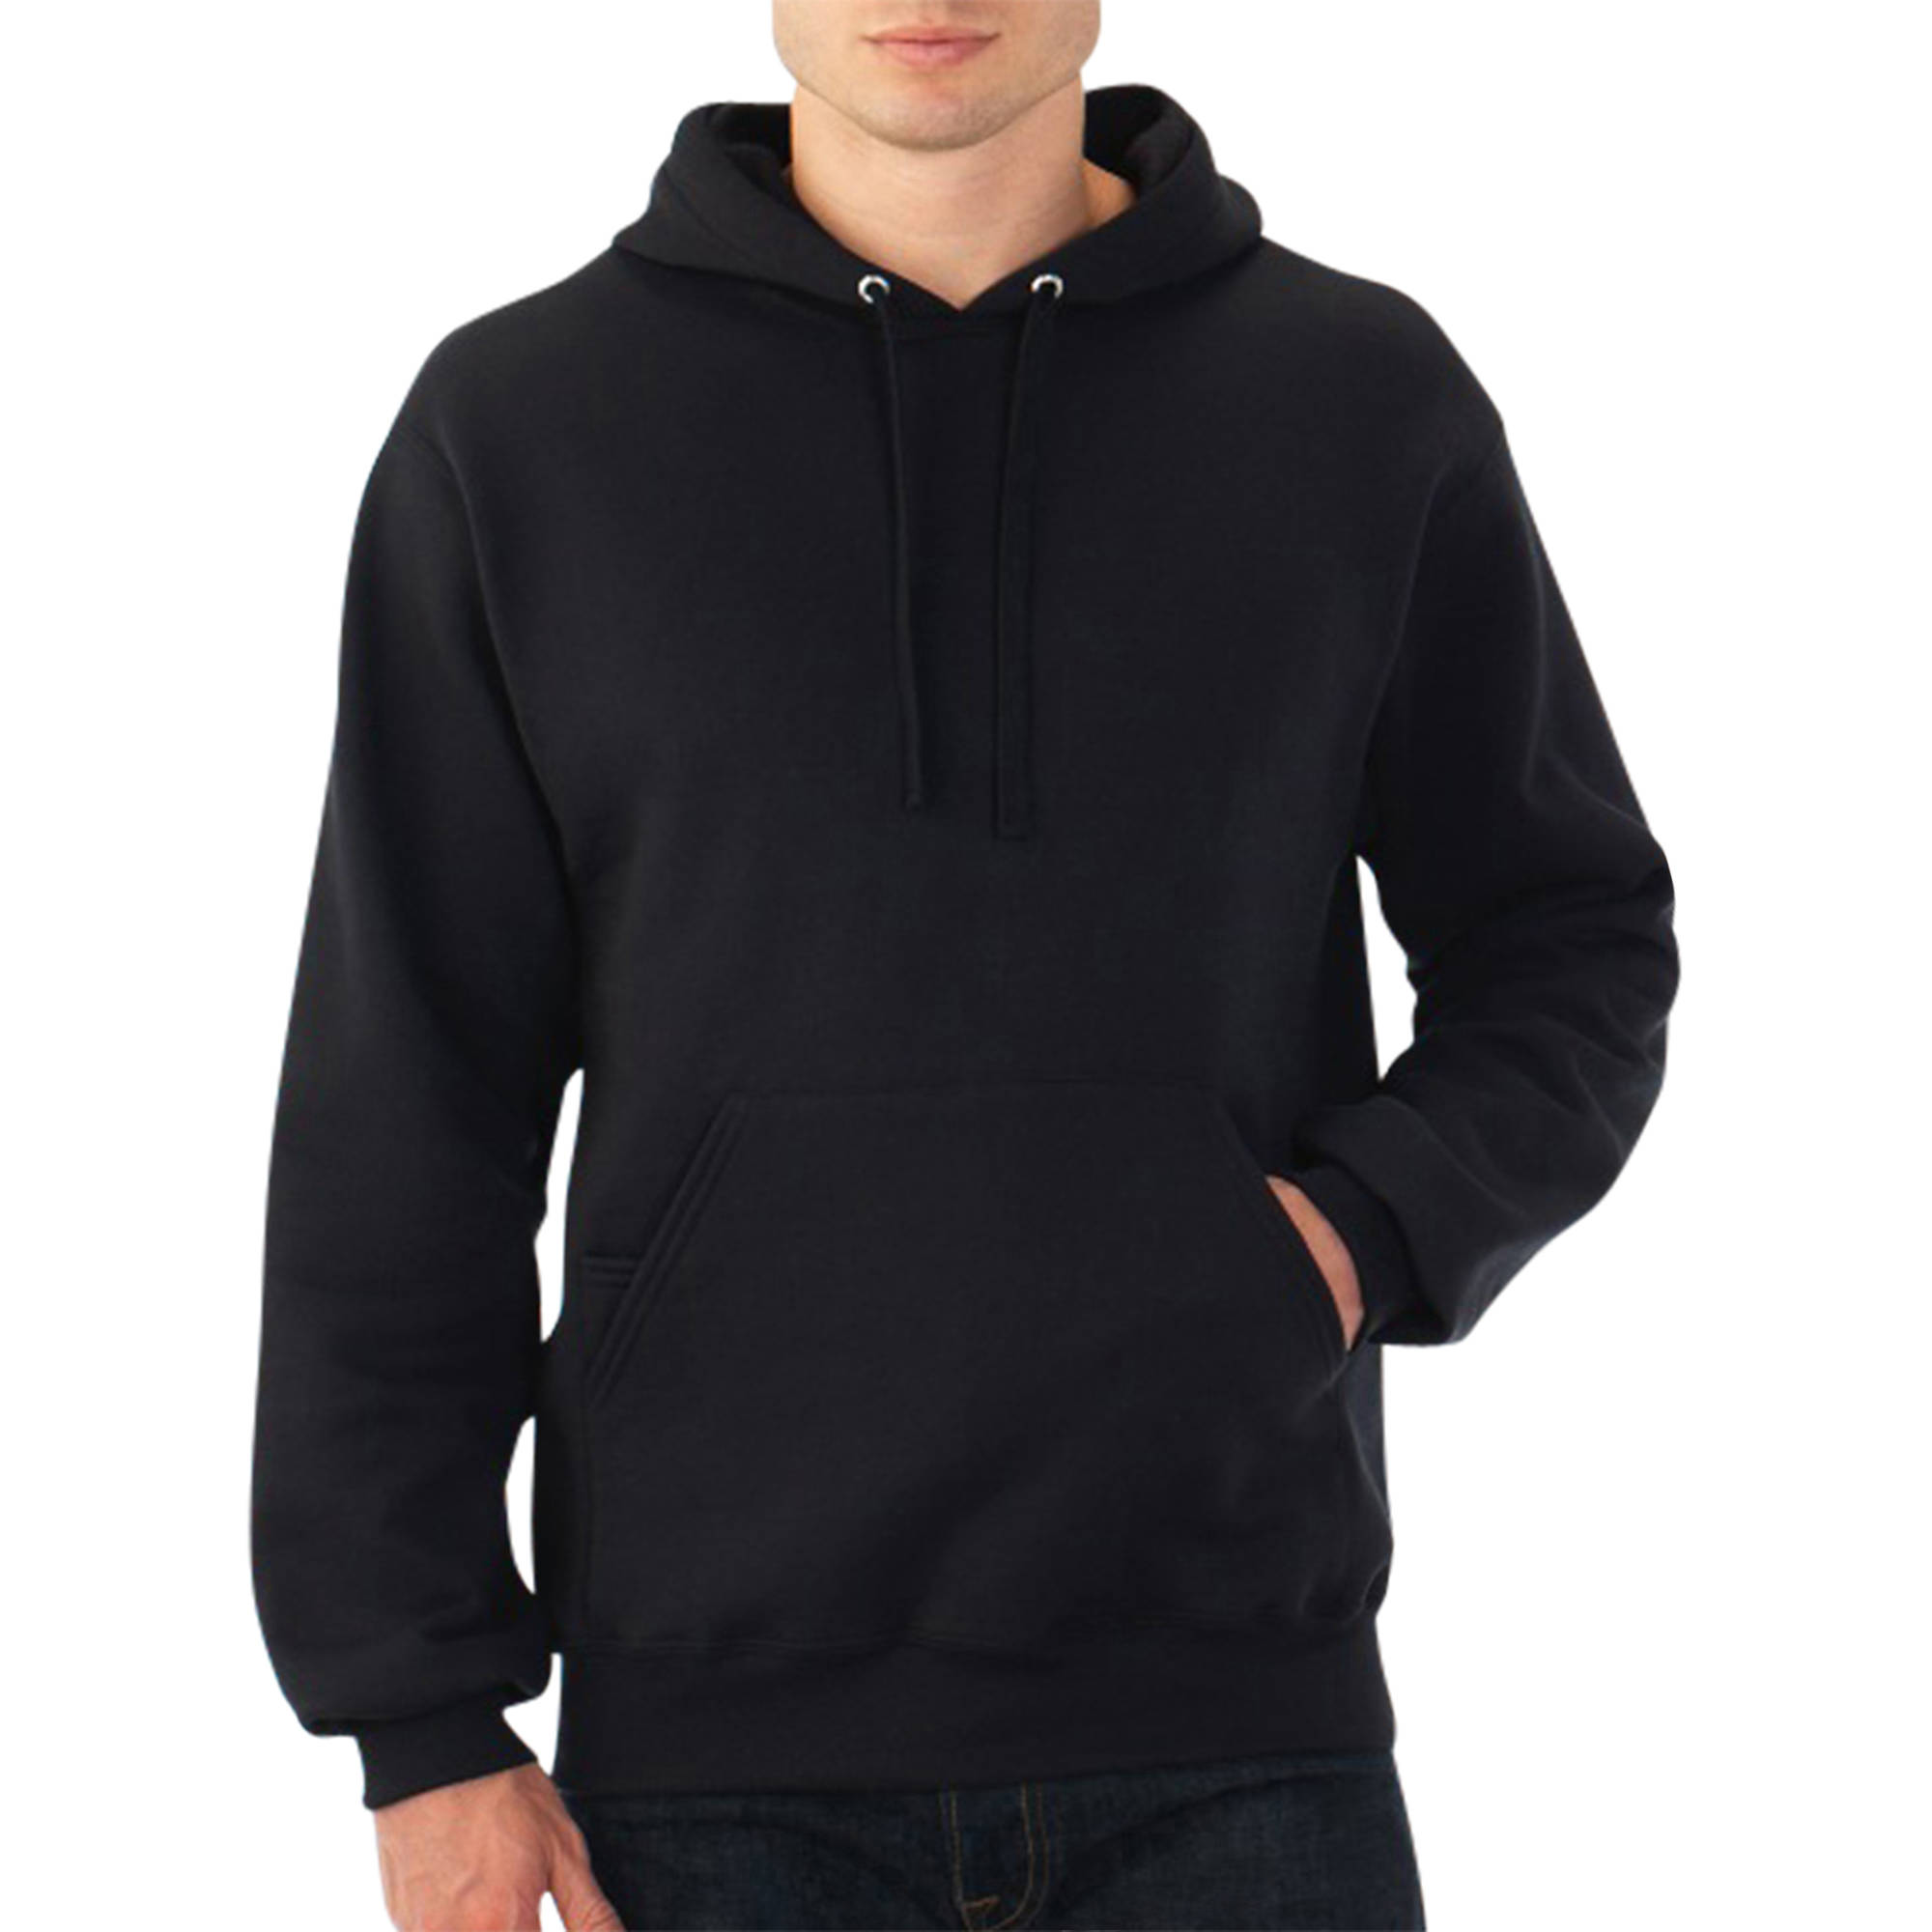 Fruit of the Loom Men's Fleece Pullover Hoodie - Walmart.com